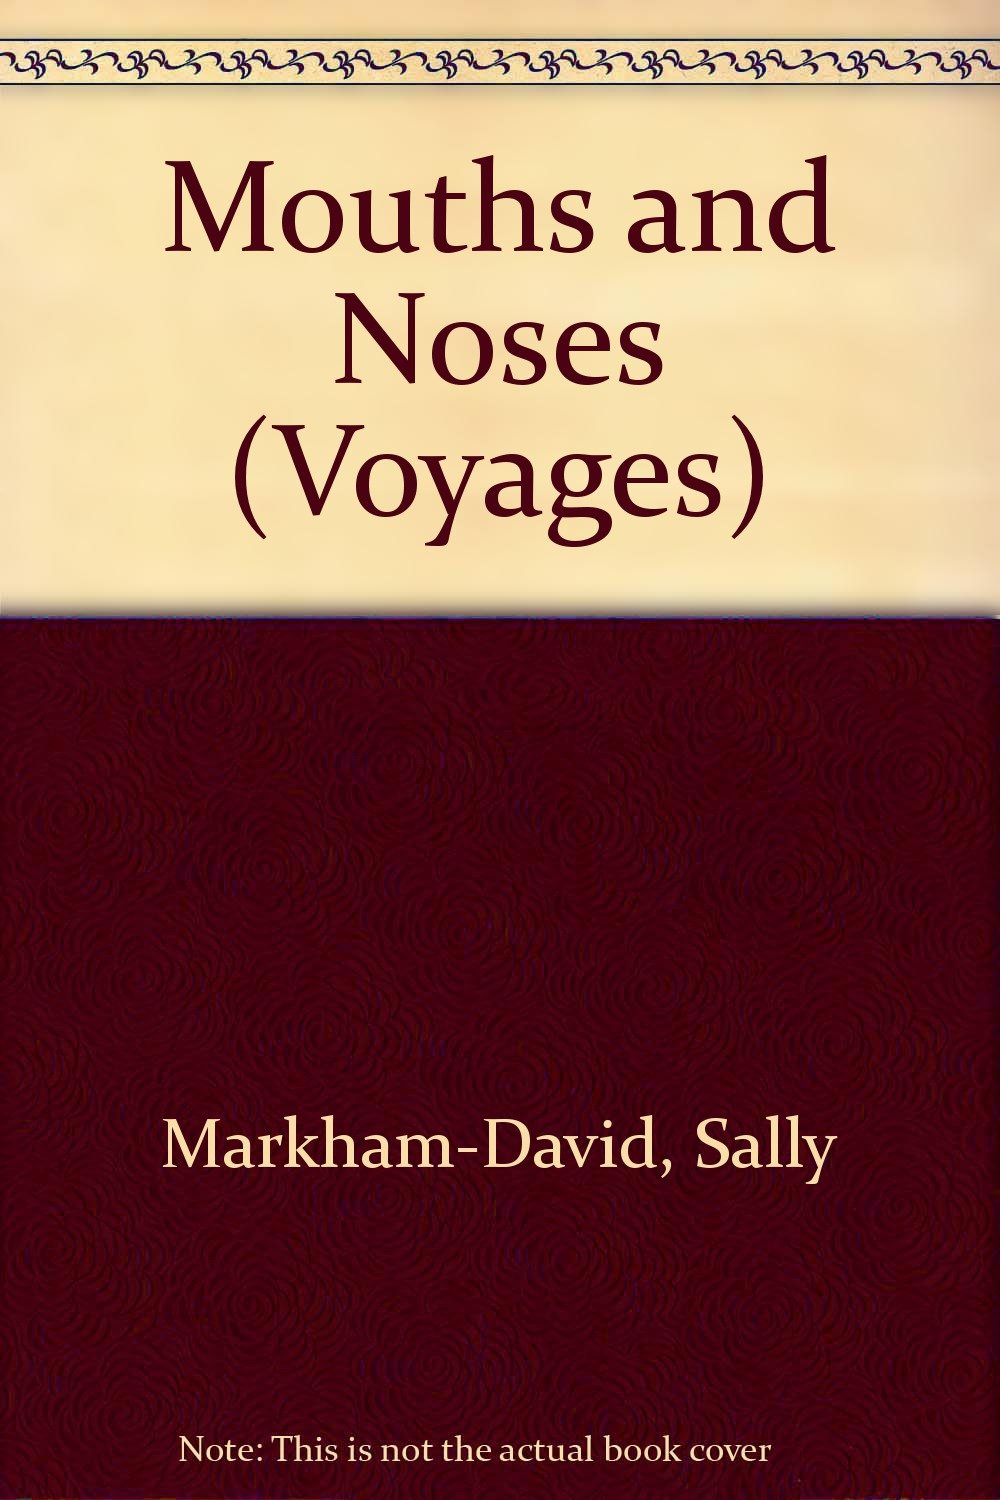 mouths and noses voyages sally markham david ruth trevor